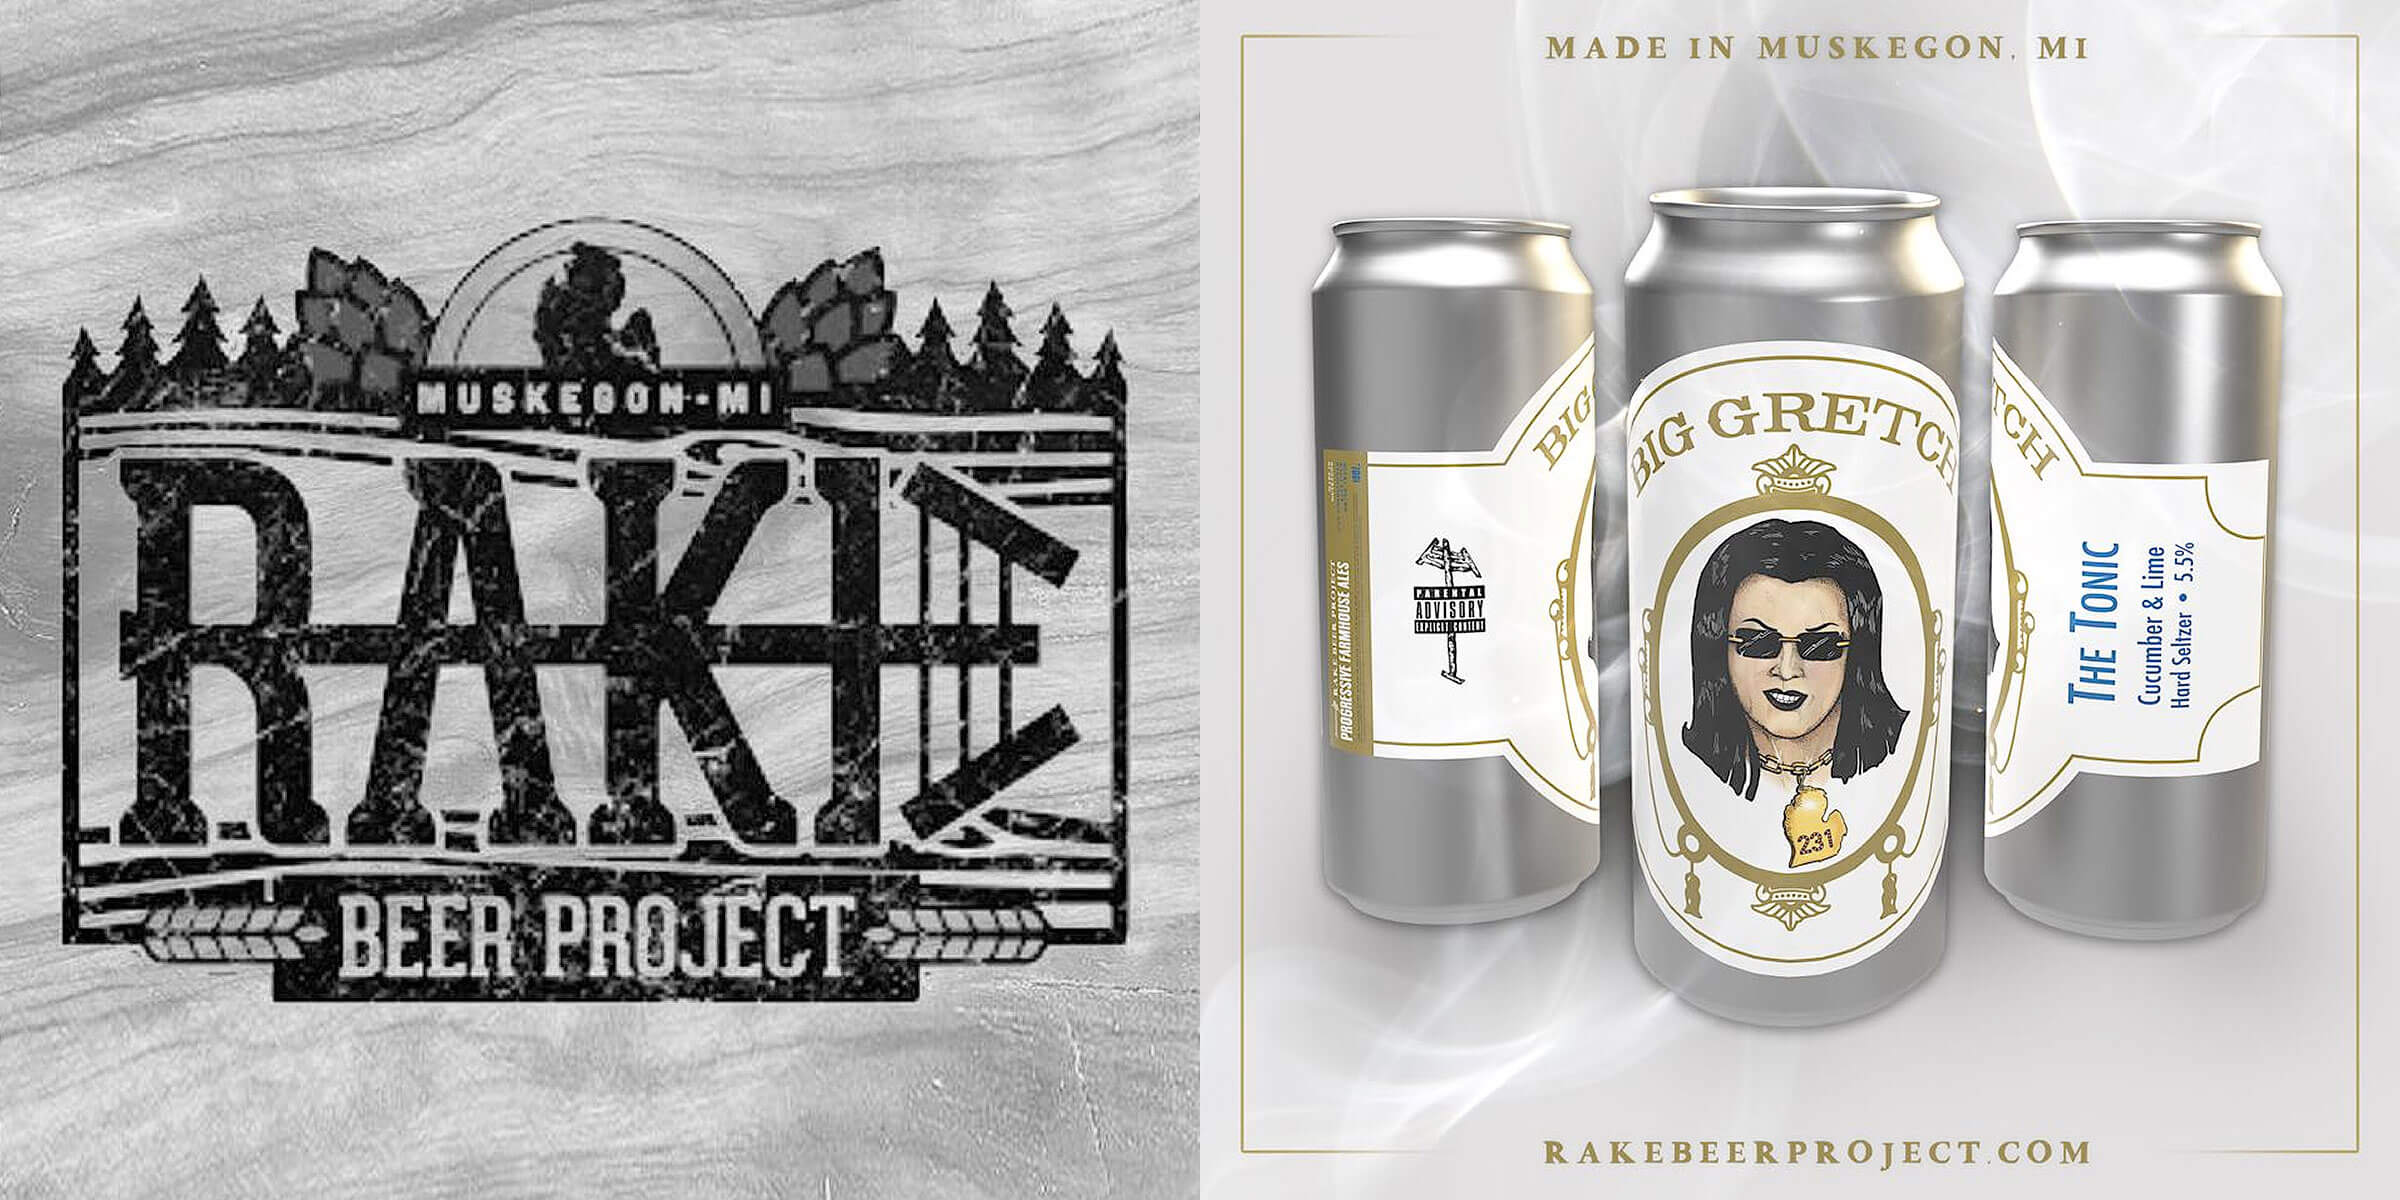 "Rake Beer Project, a brewery known for their unique sour beers, is launching ""Big Gretch"", a new hard seltzer named for Michigan Governor Gretchen Whitmer."